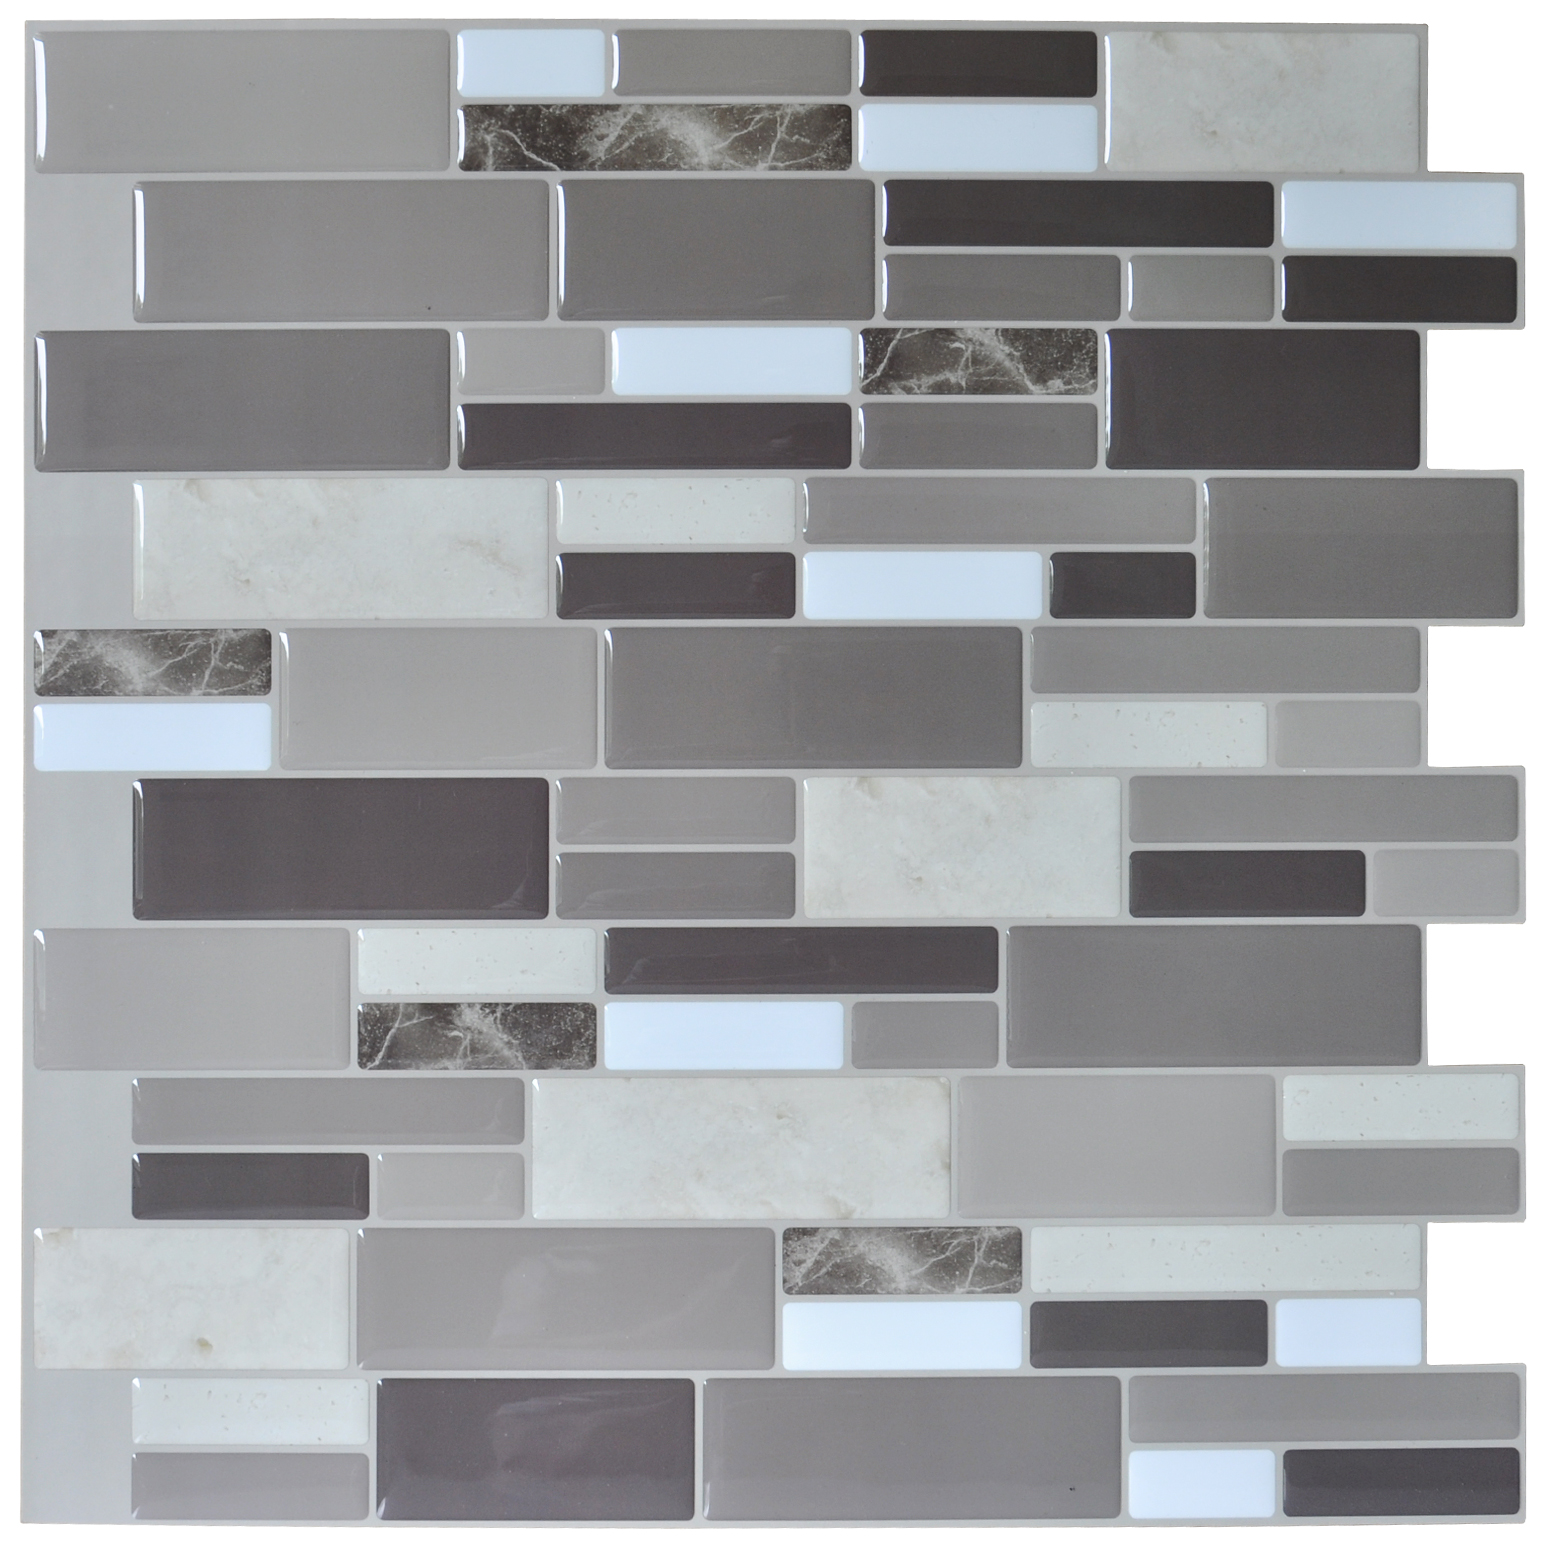 art3d peel & stick brick kitchen backsplash self-adhesive wall